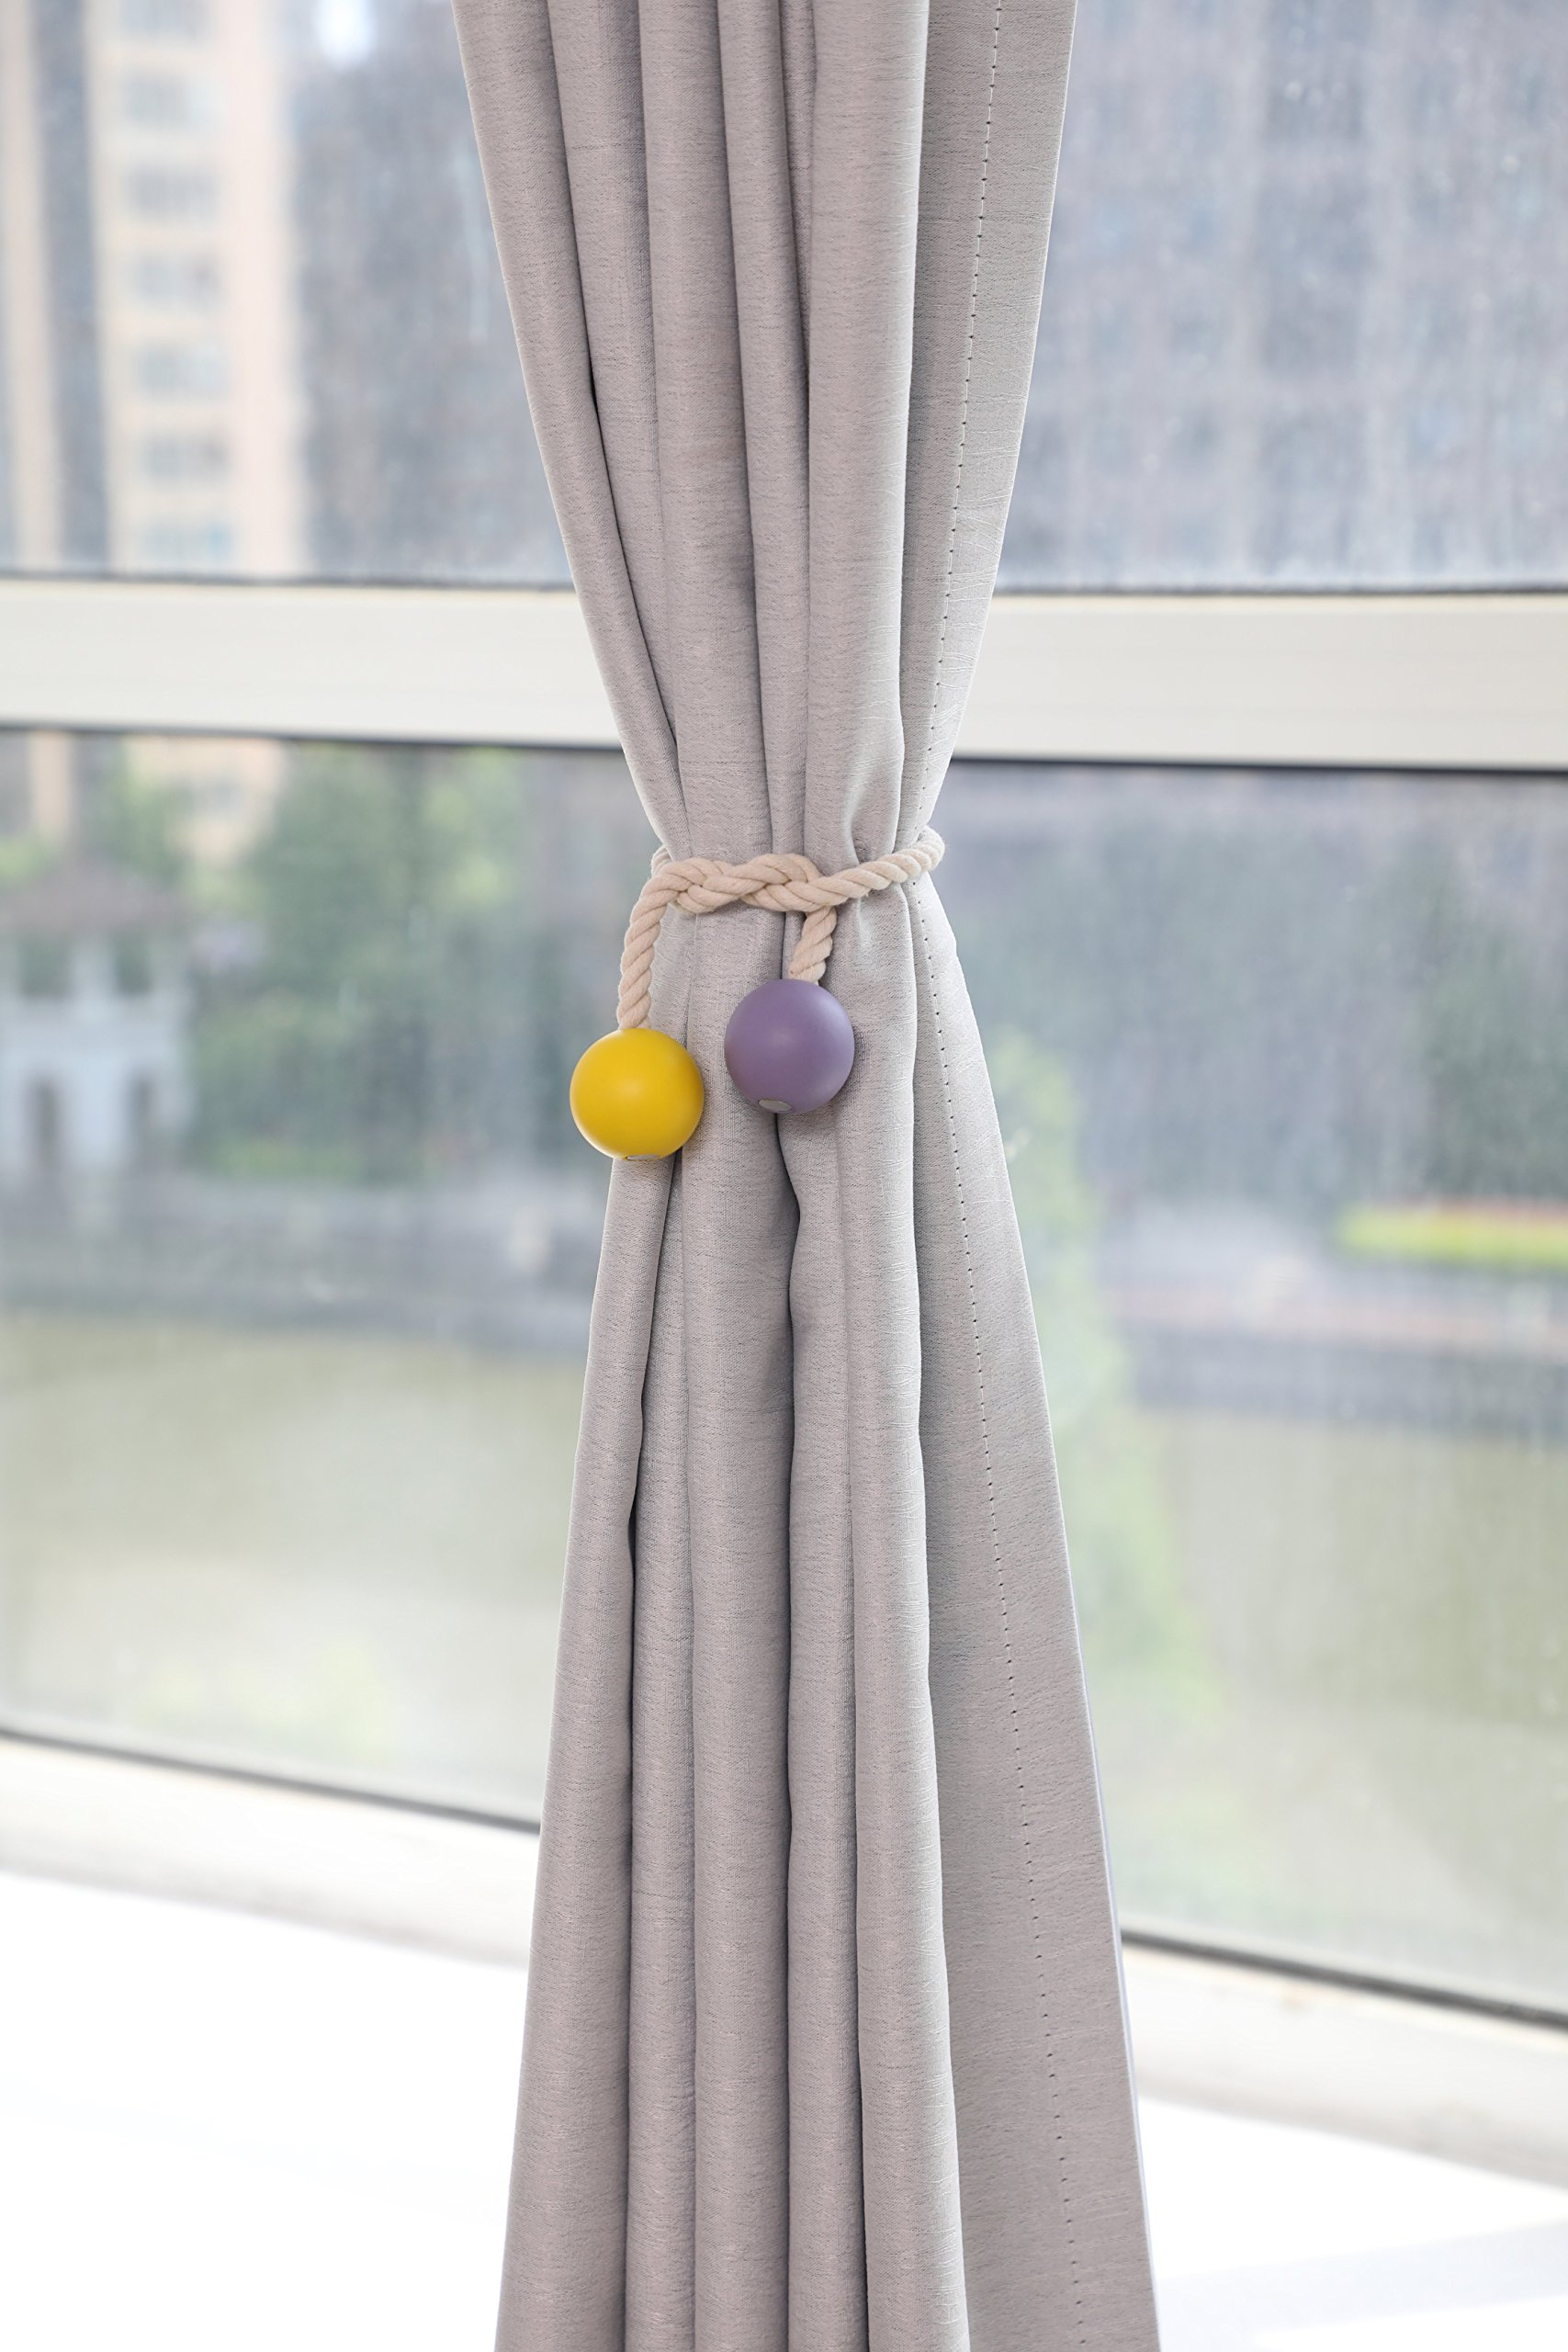 YIDIE 2 Pair Magnetic Curtain Tiebacks Rope-Window Treatment Hardware Curtain Holdbacks Drape Holder for Home Office,Beige by YIDIE (Image #3)